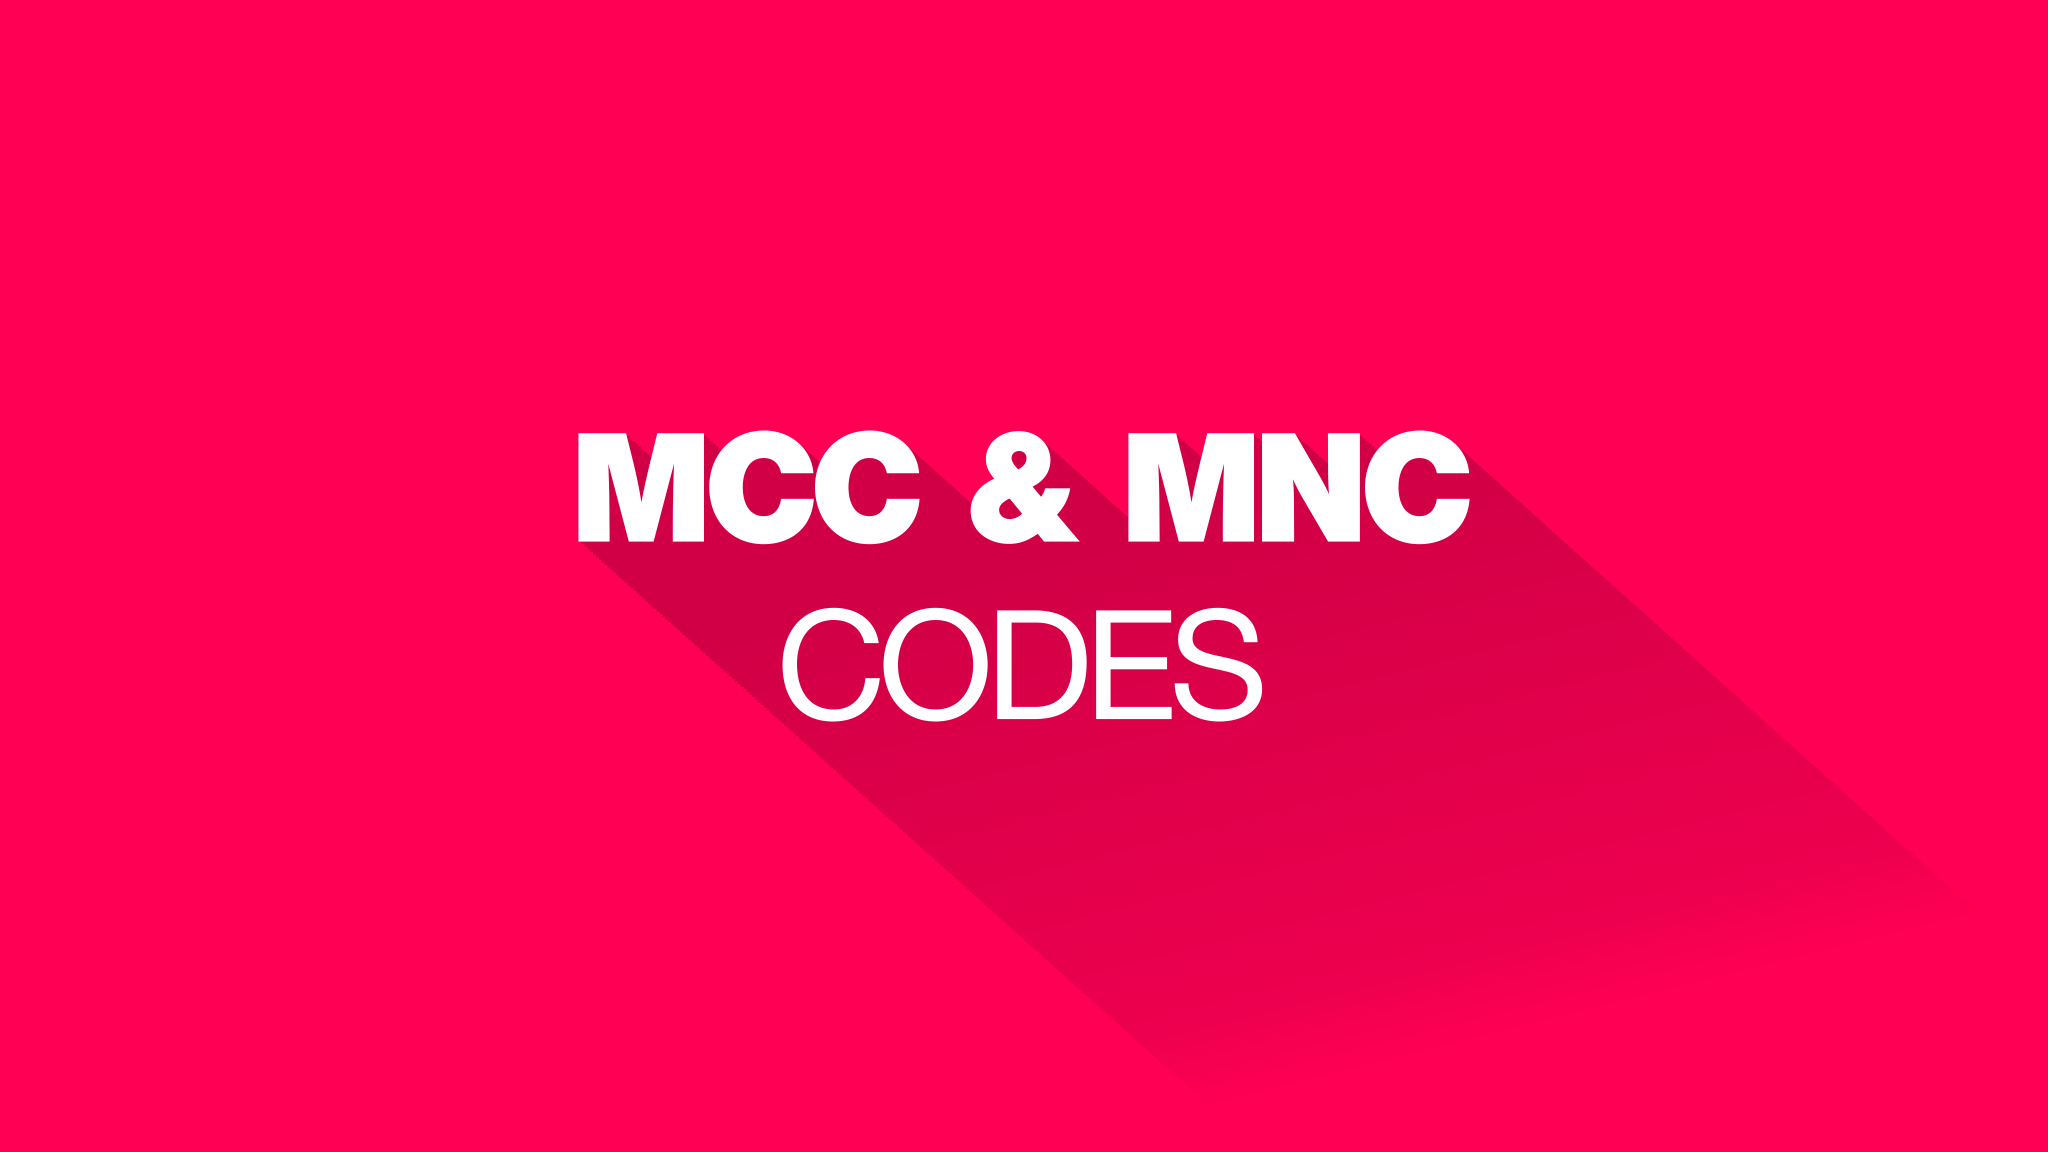 Mobili Baltija Mobile Country Code Mcc And Mobile Network Code Mnc Us